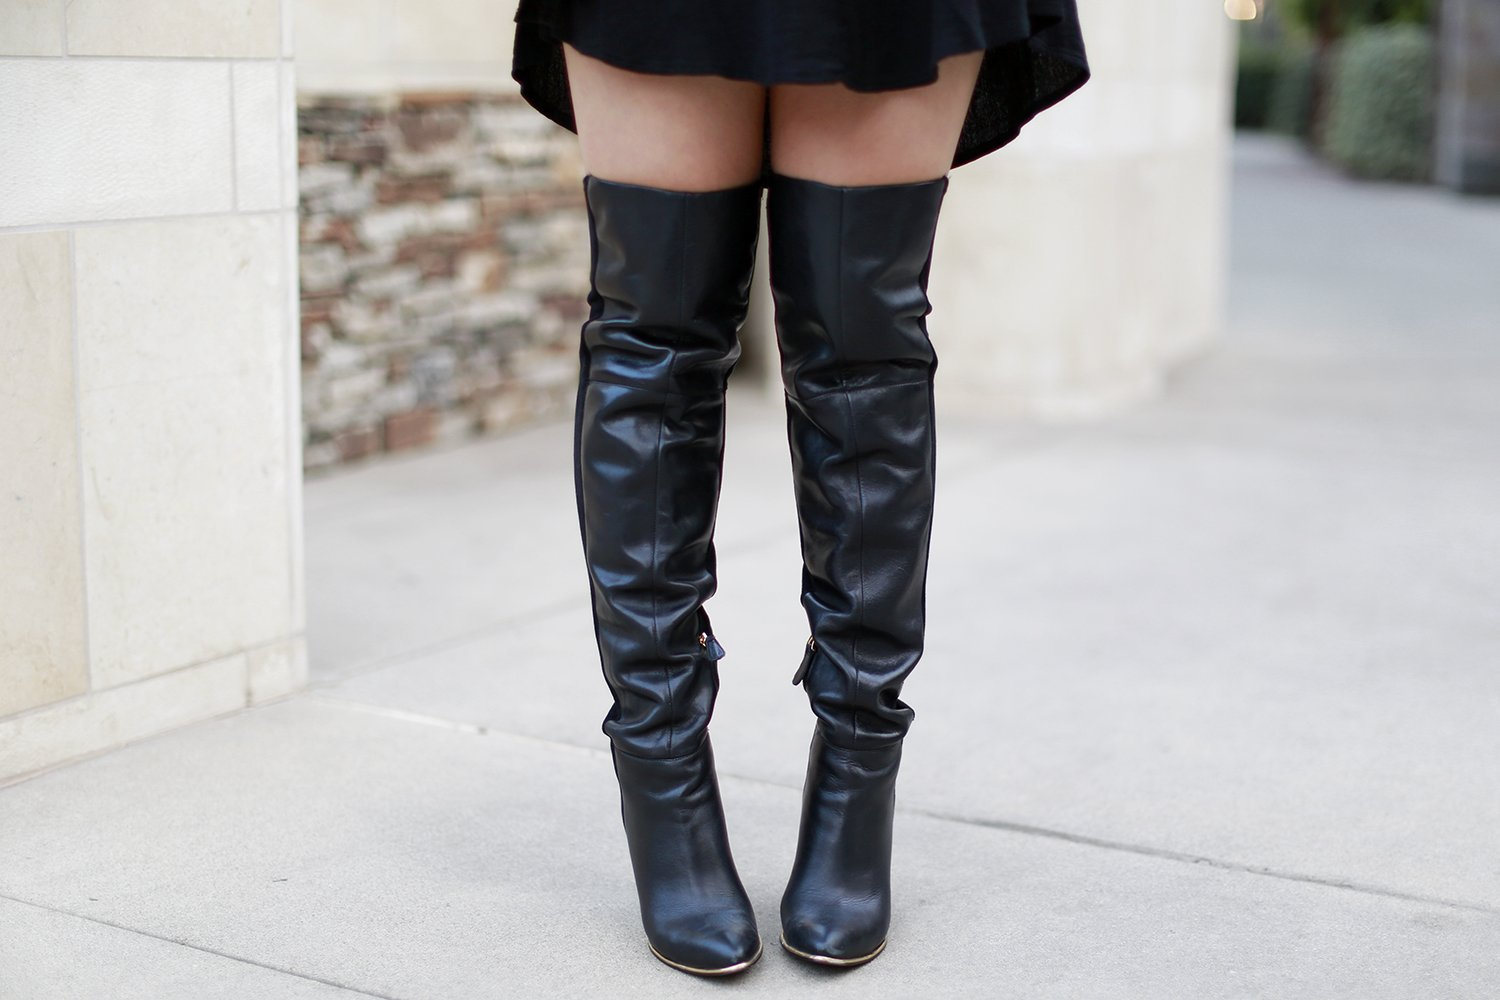 Boho Halloween Inspired Witch Outfit Idea OTK BOots